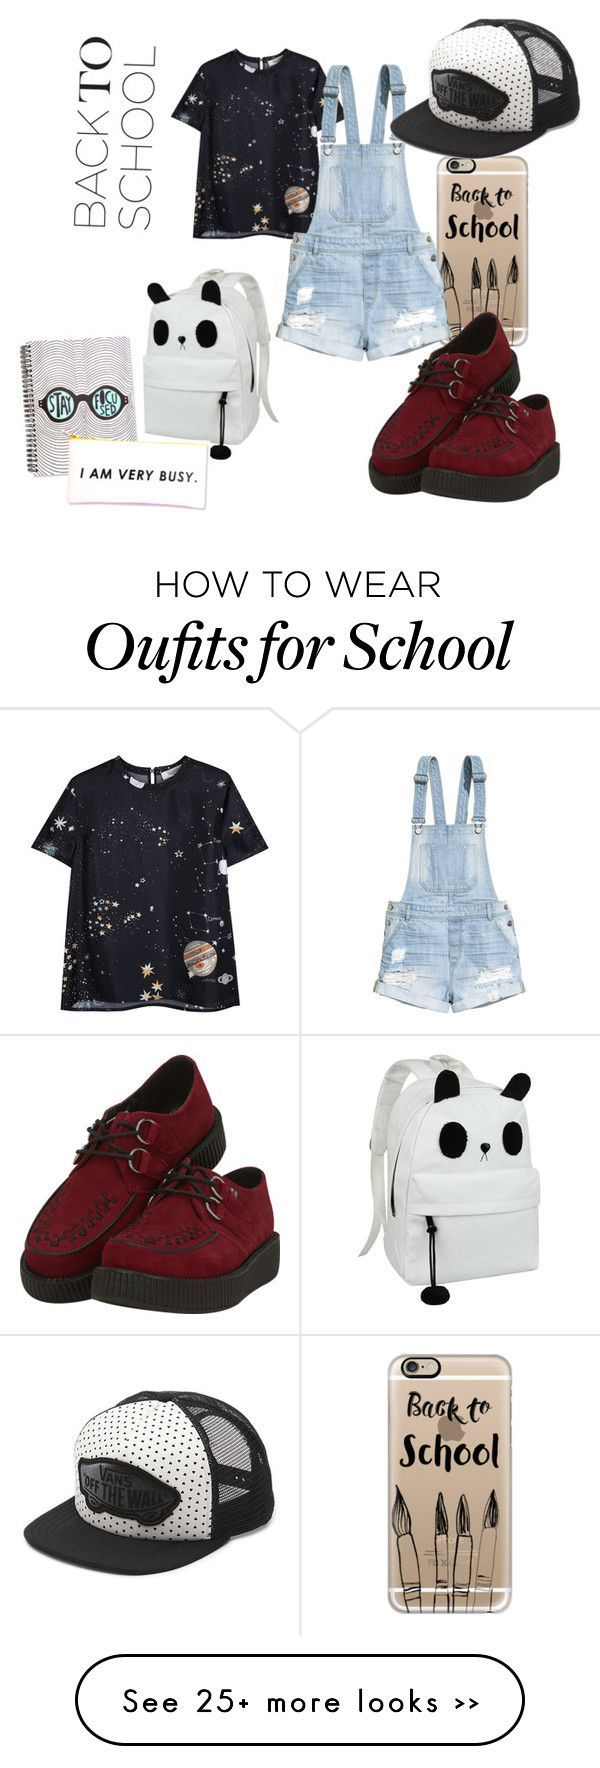 """back to school"" by nikrivers on Polyvore featuring moda, Casetify, Valentino, H&M, T.U.K., Vans, BackToSchool y shop"